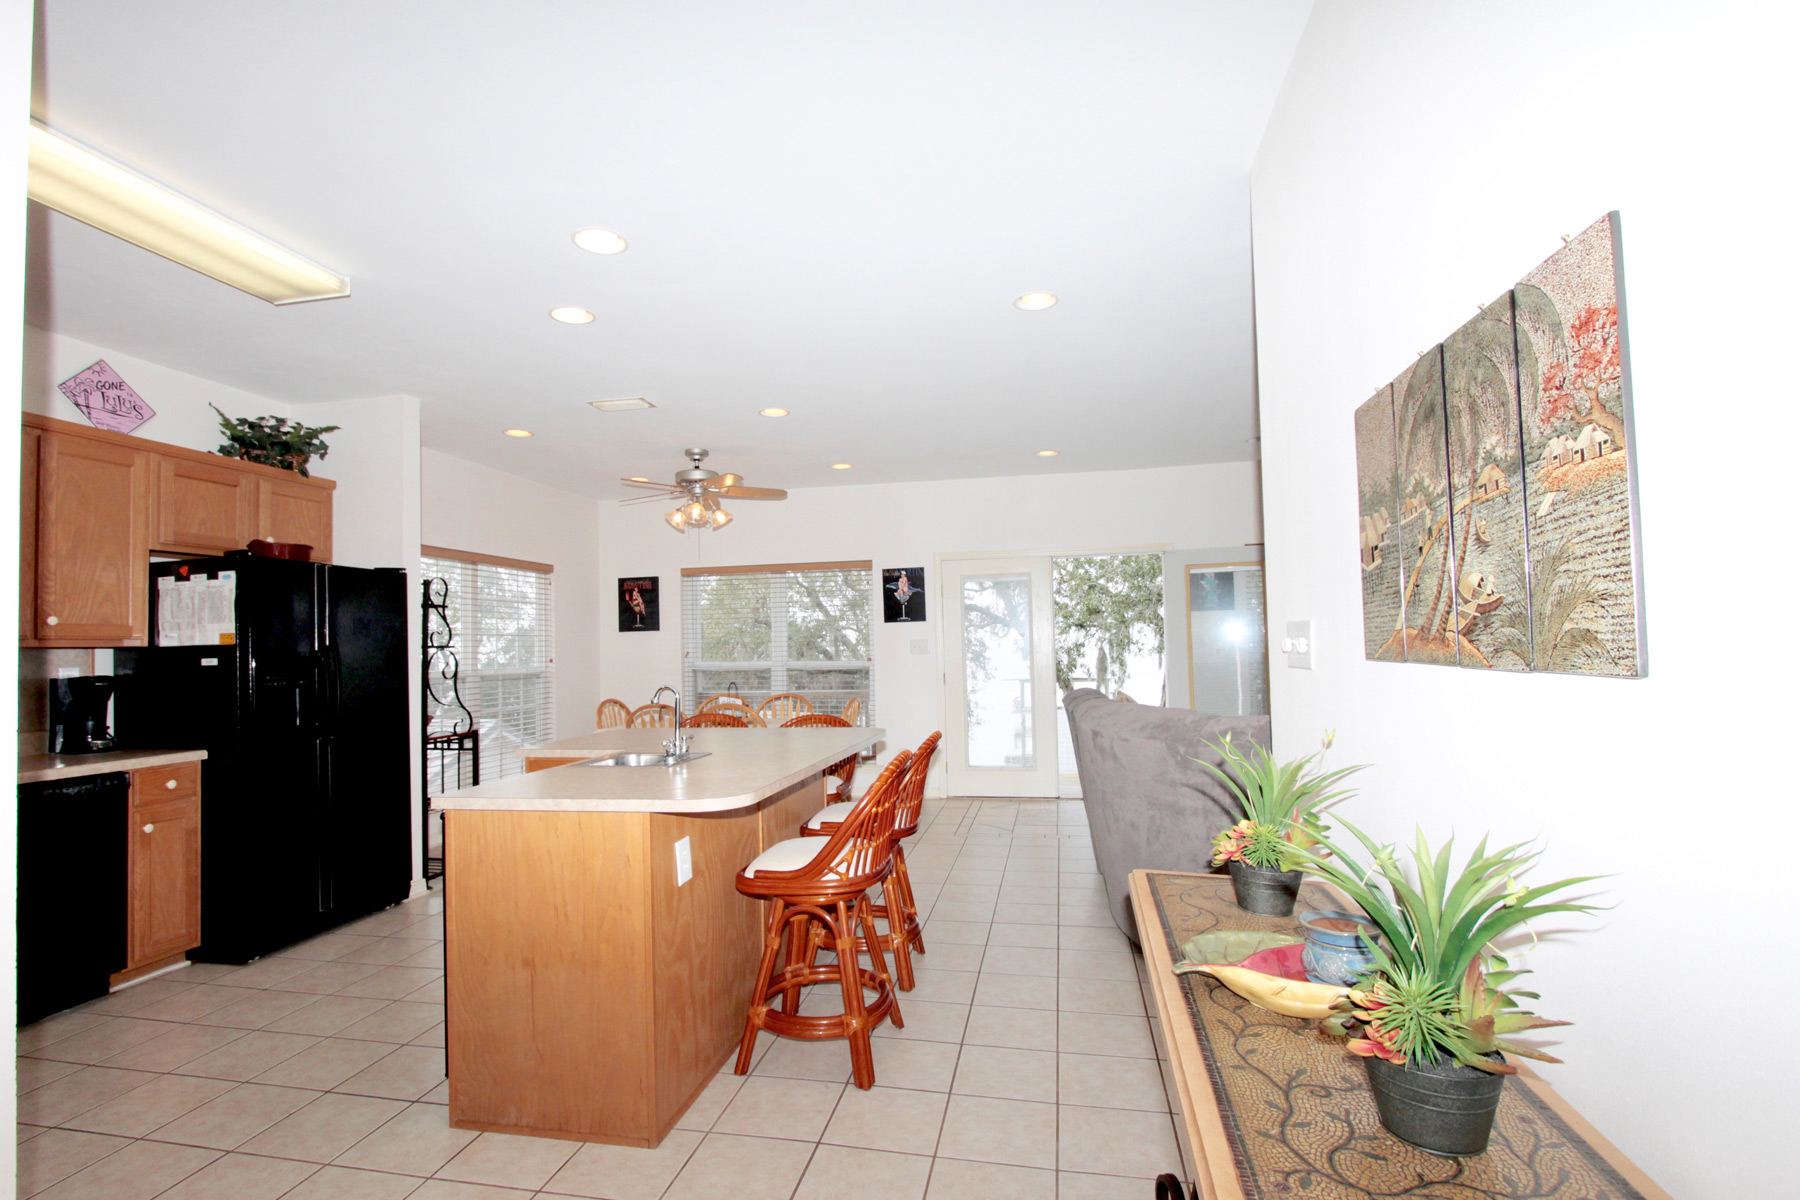 Entrance into kitchen/living/dining area